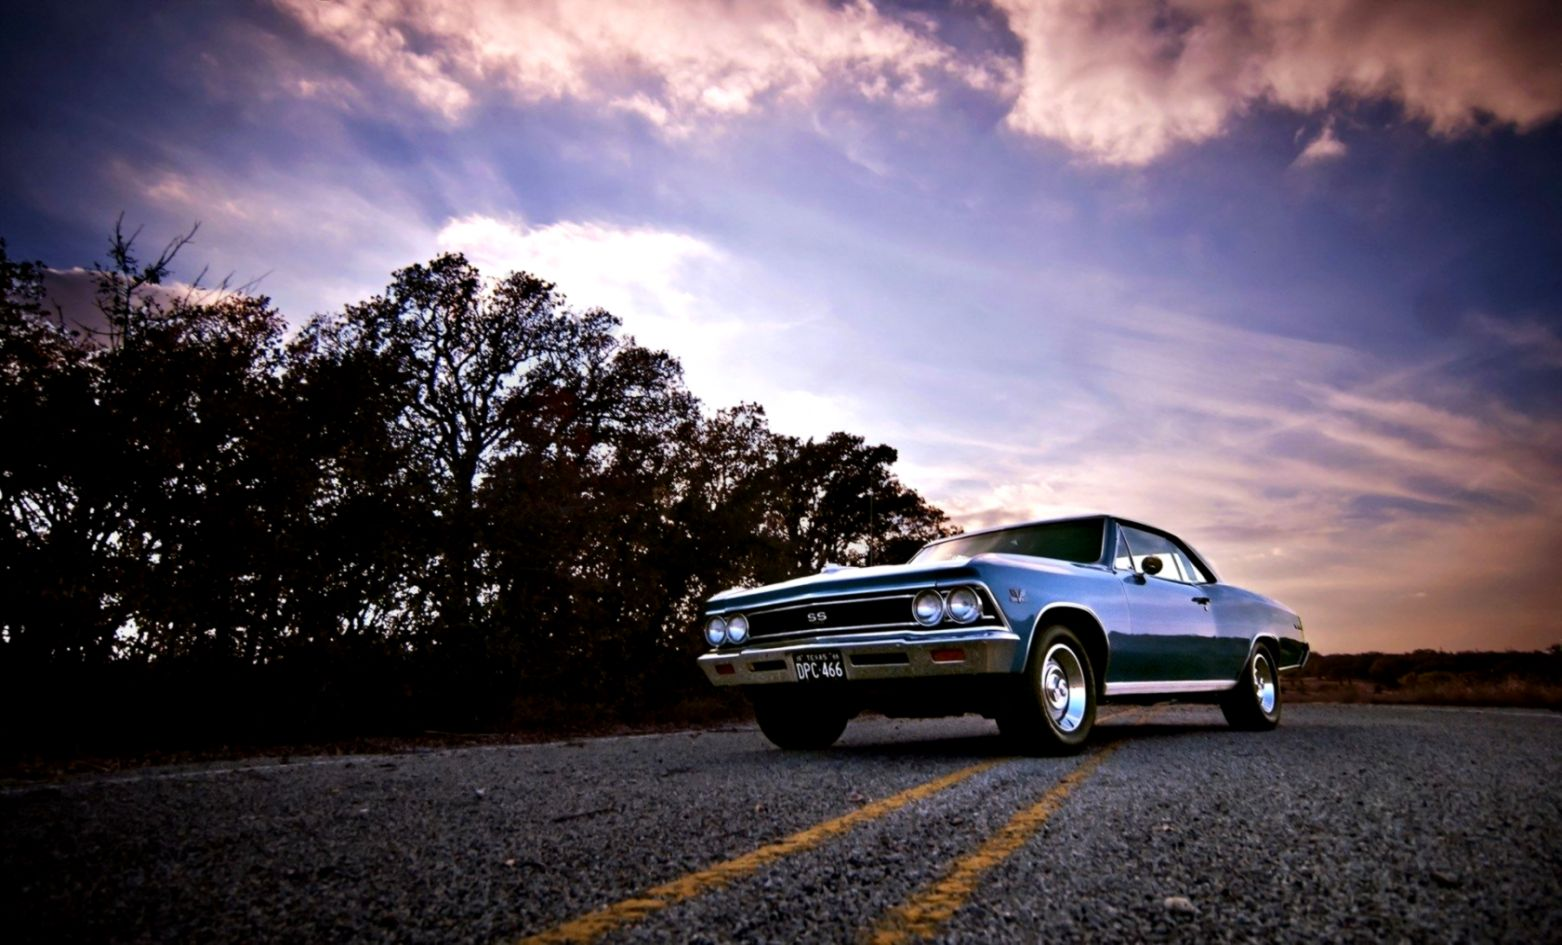 1966 Chevrolet Chevelle SS Wallpaper and Background Image